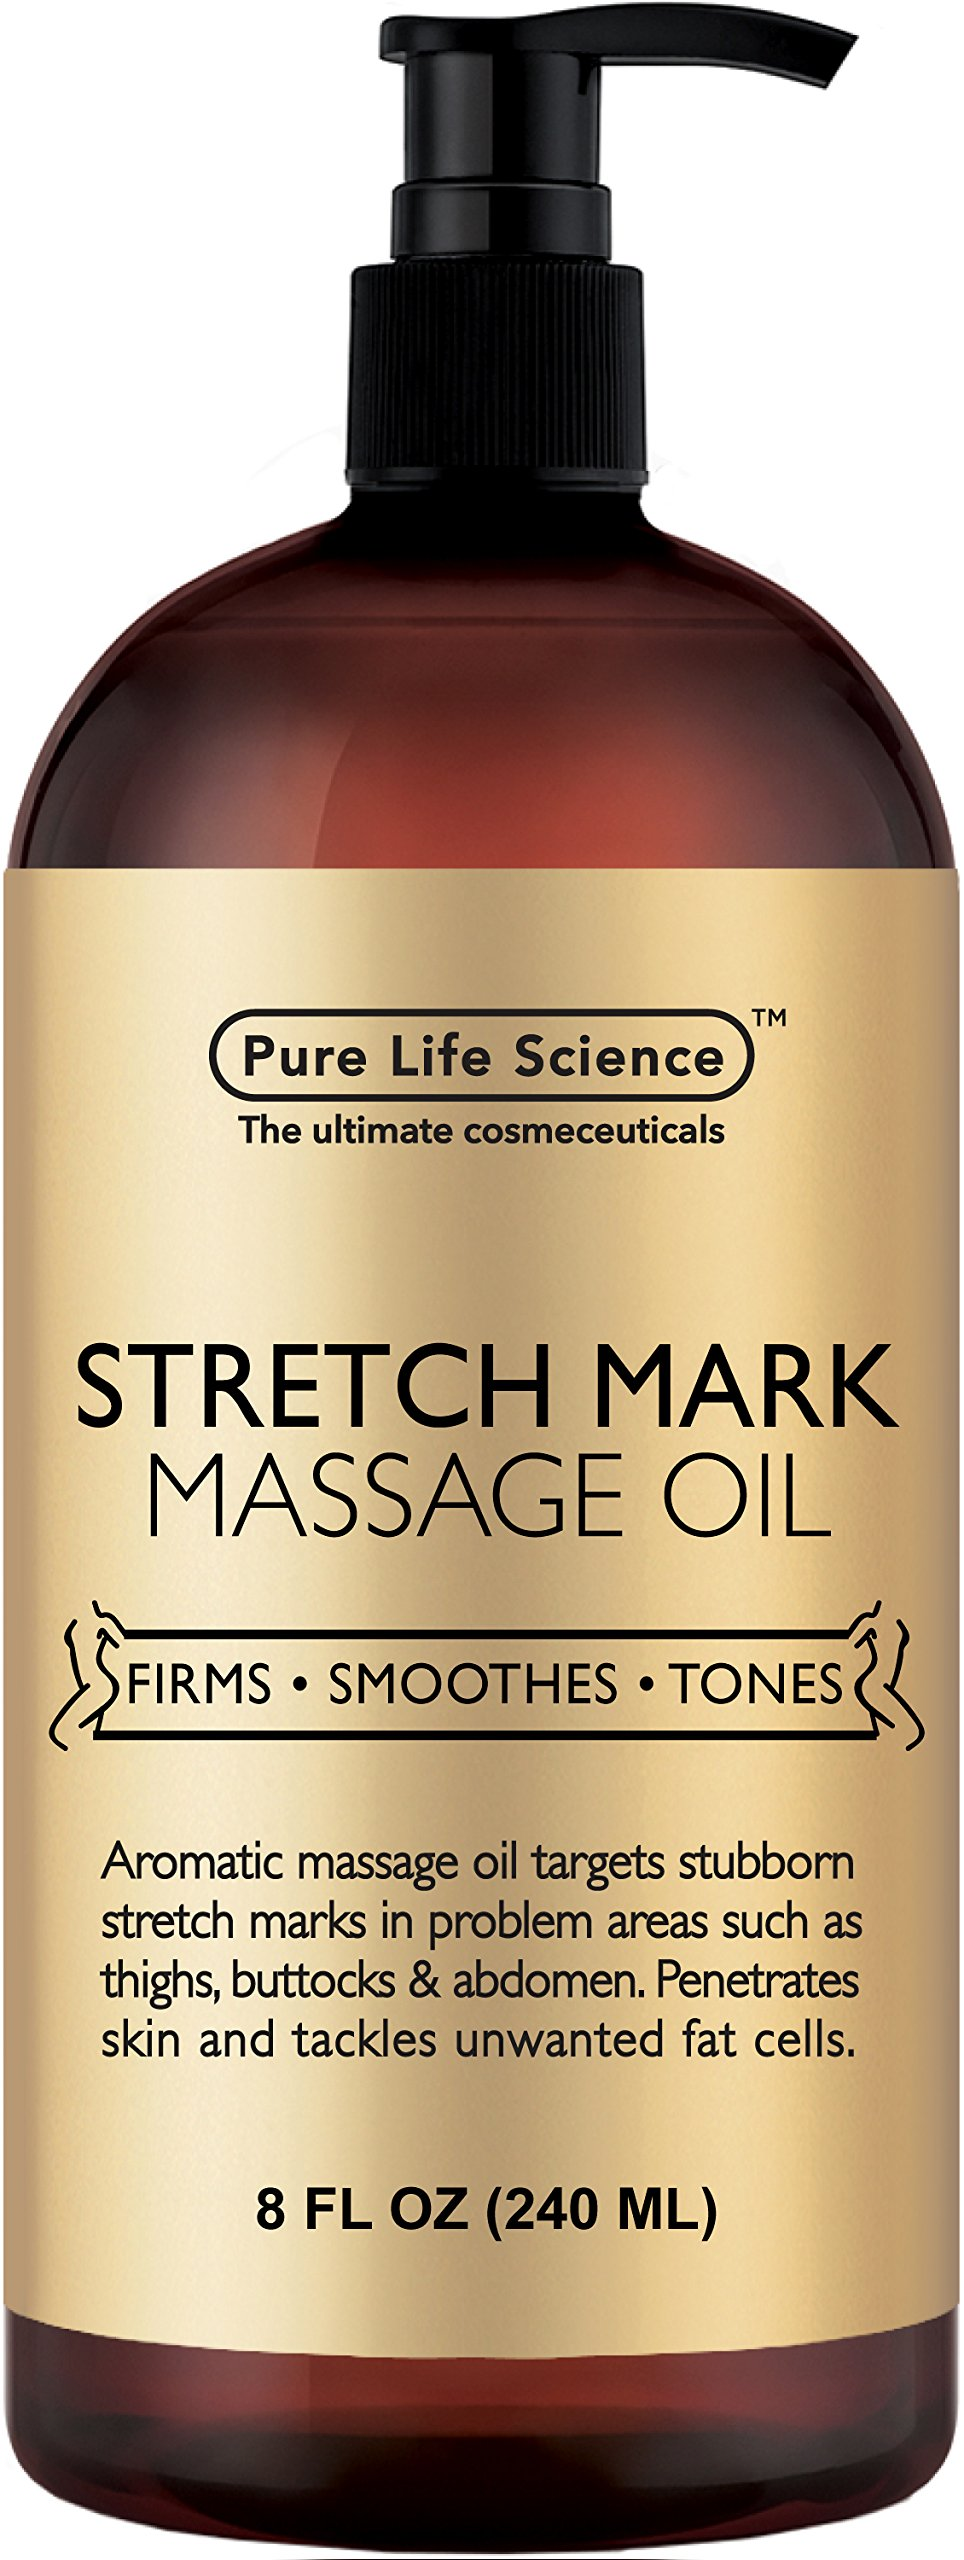 Anti Stretch Marks Massage Oil - All Natural Ingredients - Penetrates Skin 6X Deeper Than Stretch Mark Cream - Targets Unwanted Fat Tissues & Improves Skin Firmness - 8 OZ by PURE PLANT HOME